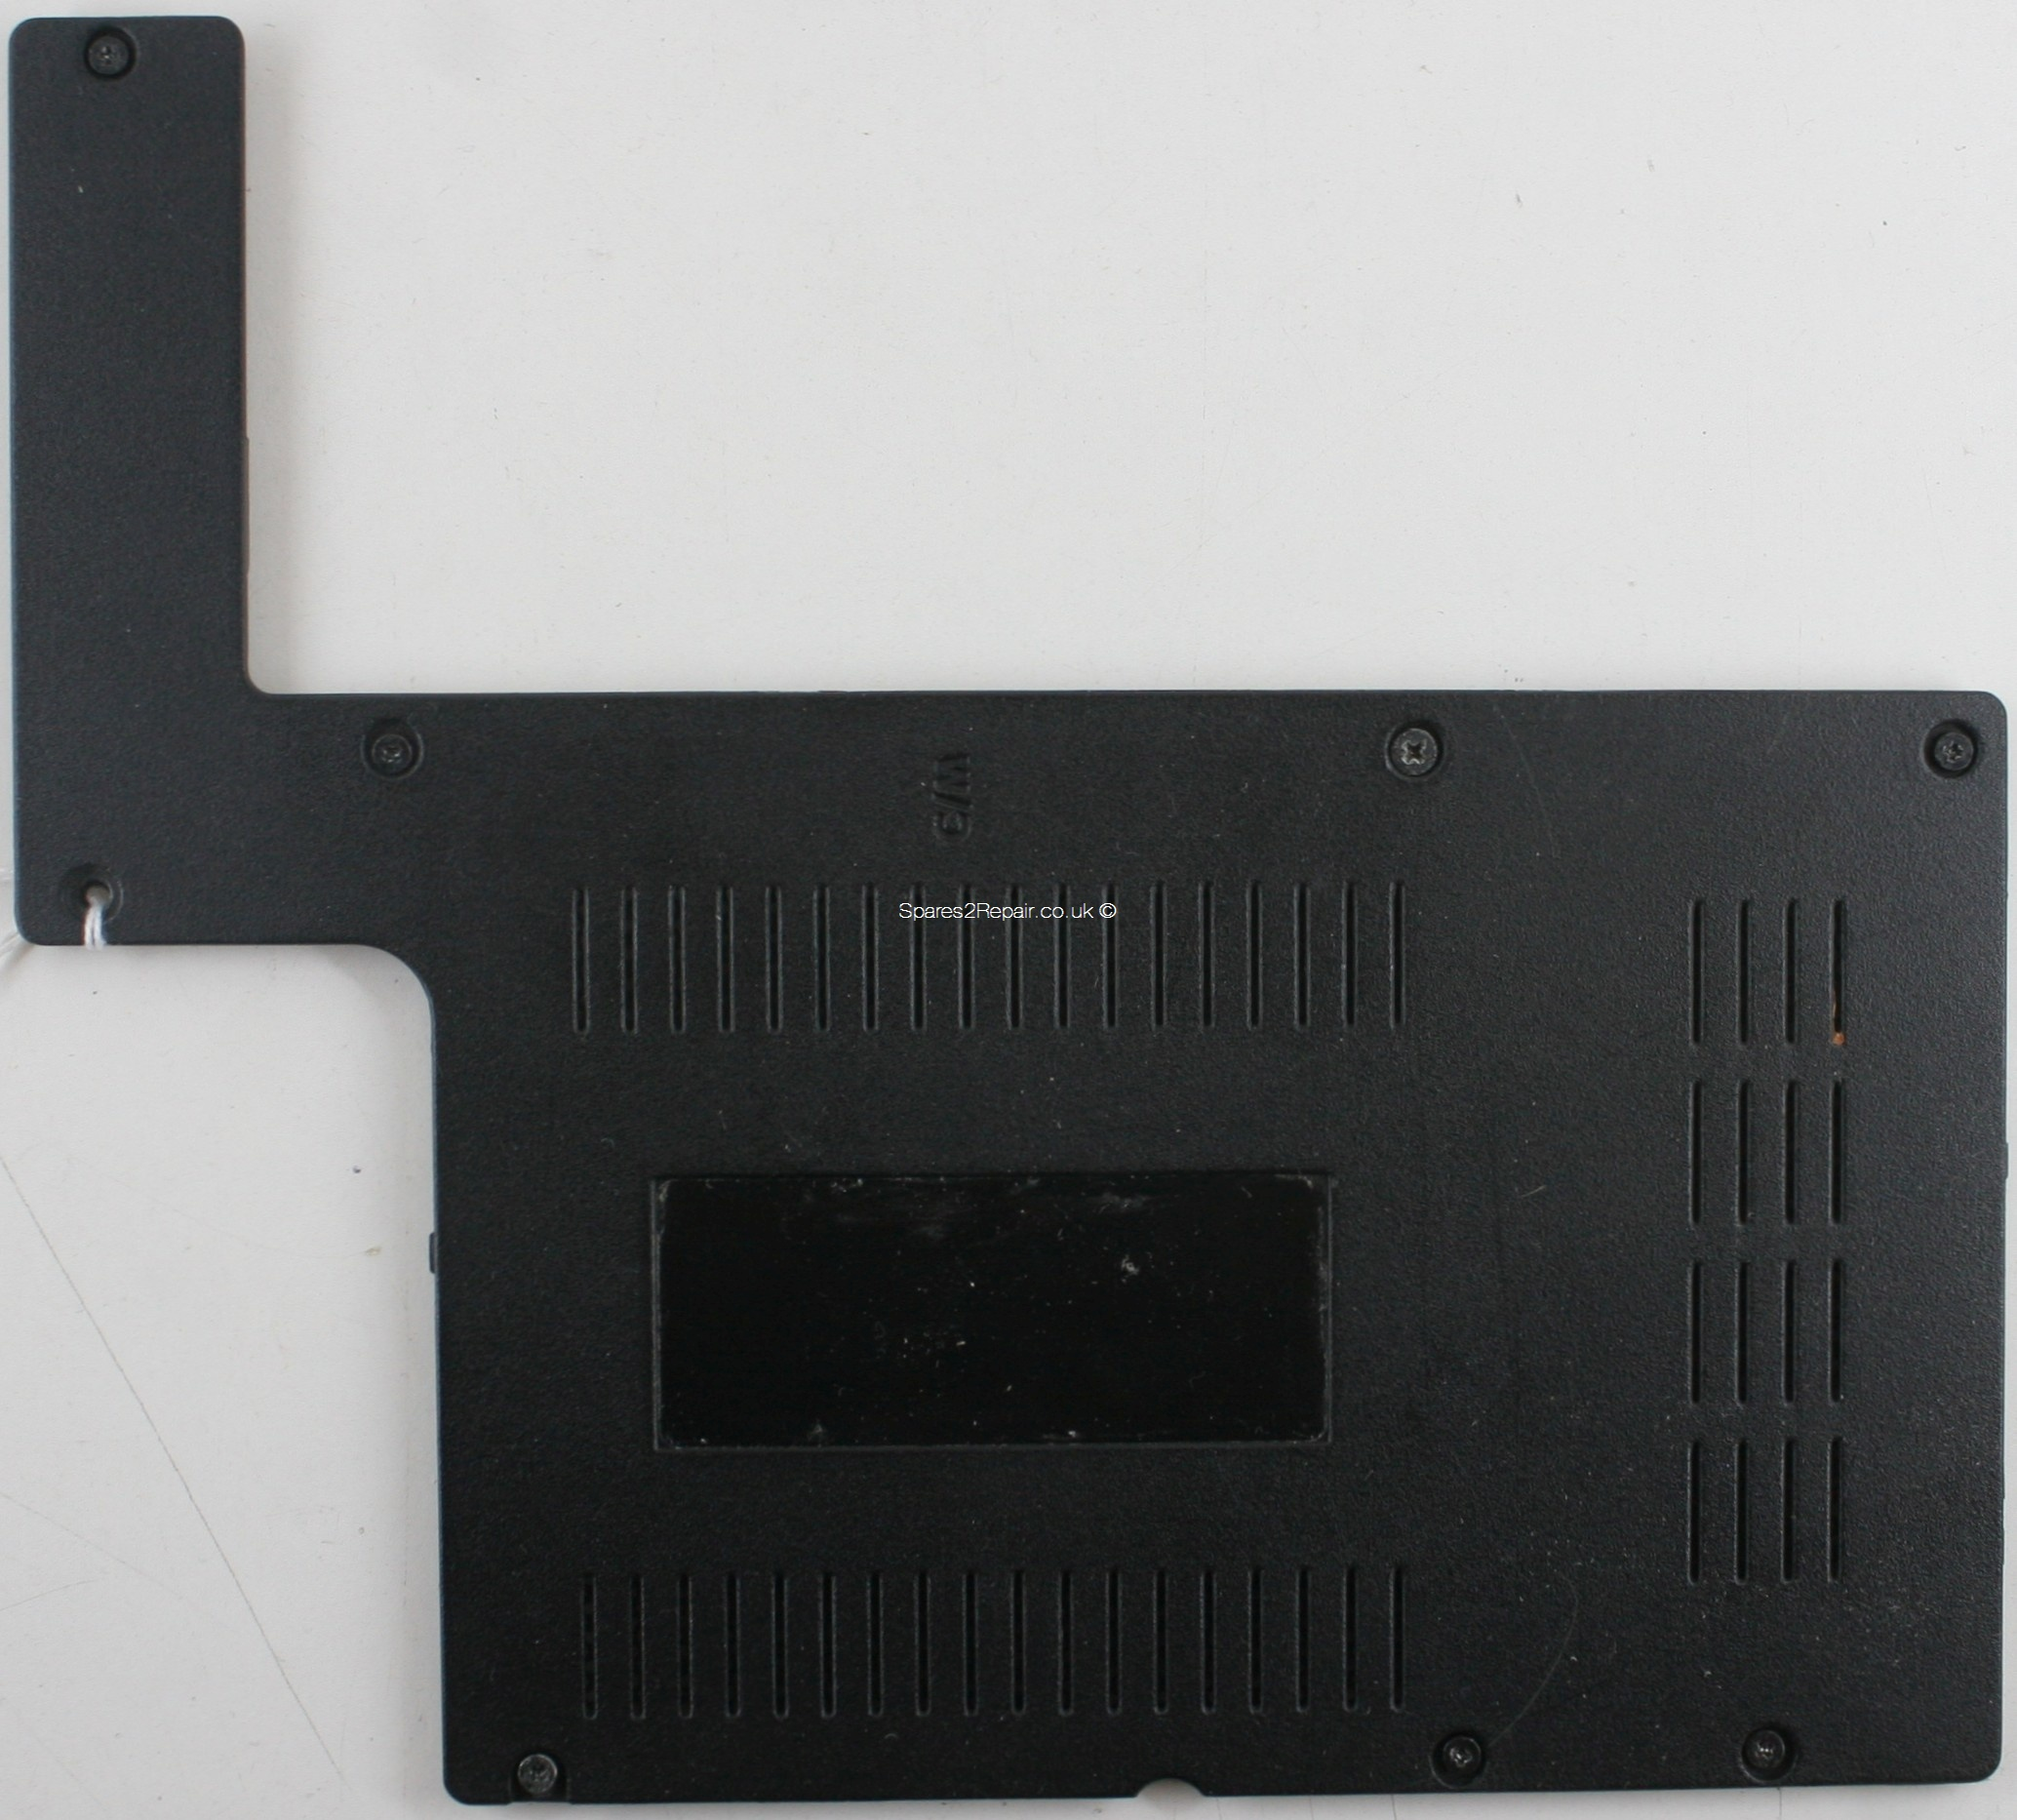 Dell Inspiron 1525 - Base Cover - 60.4W011.002 - REV:C02